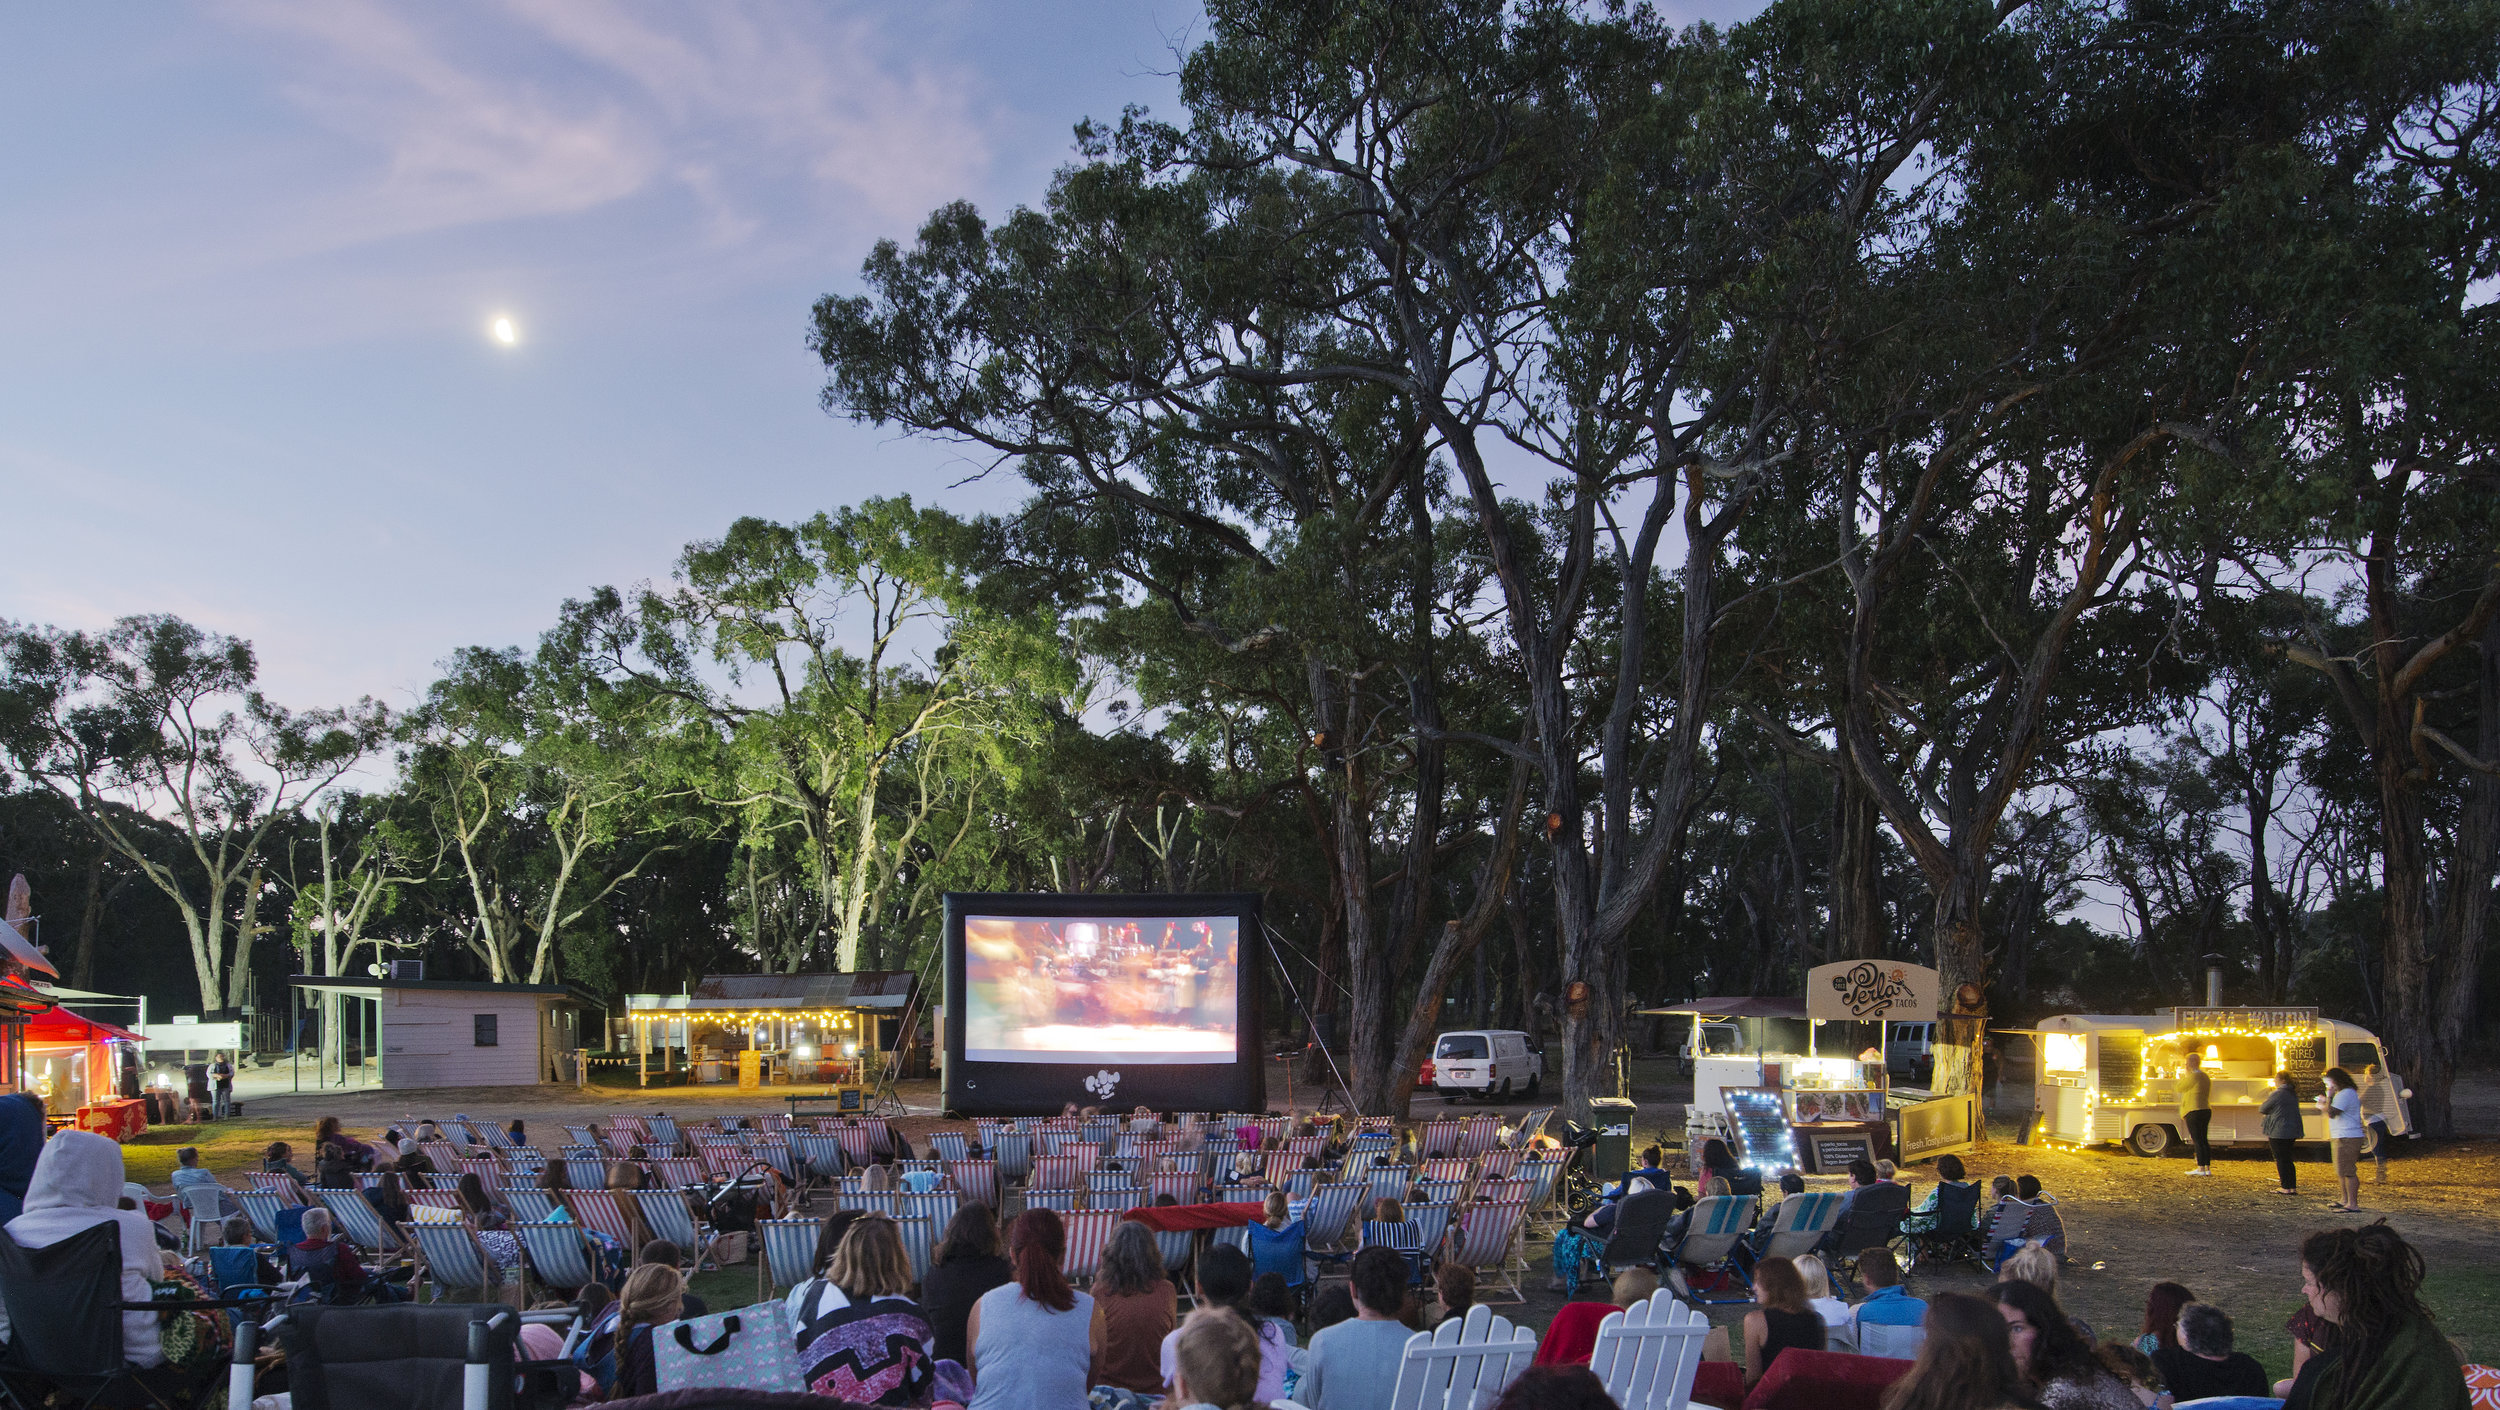 Stringybark Cinema - For the last six years we have been working with the very creative folks at Unscene Events to produce some unforgettable outdoor movie events. For a few years we were located at the beautiful Emu Plains Market and most recently in the stunning Frankston Botanical Gardens. Blow Up Cinema provided the full cinema package and programmed all the movies.